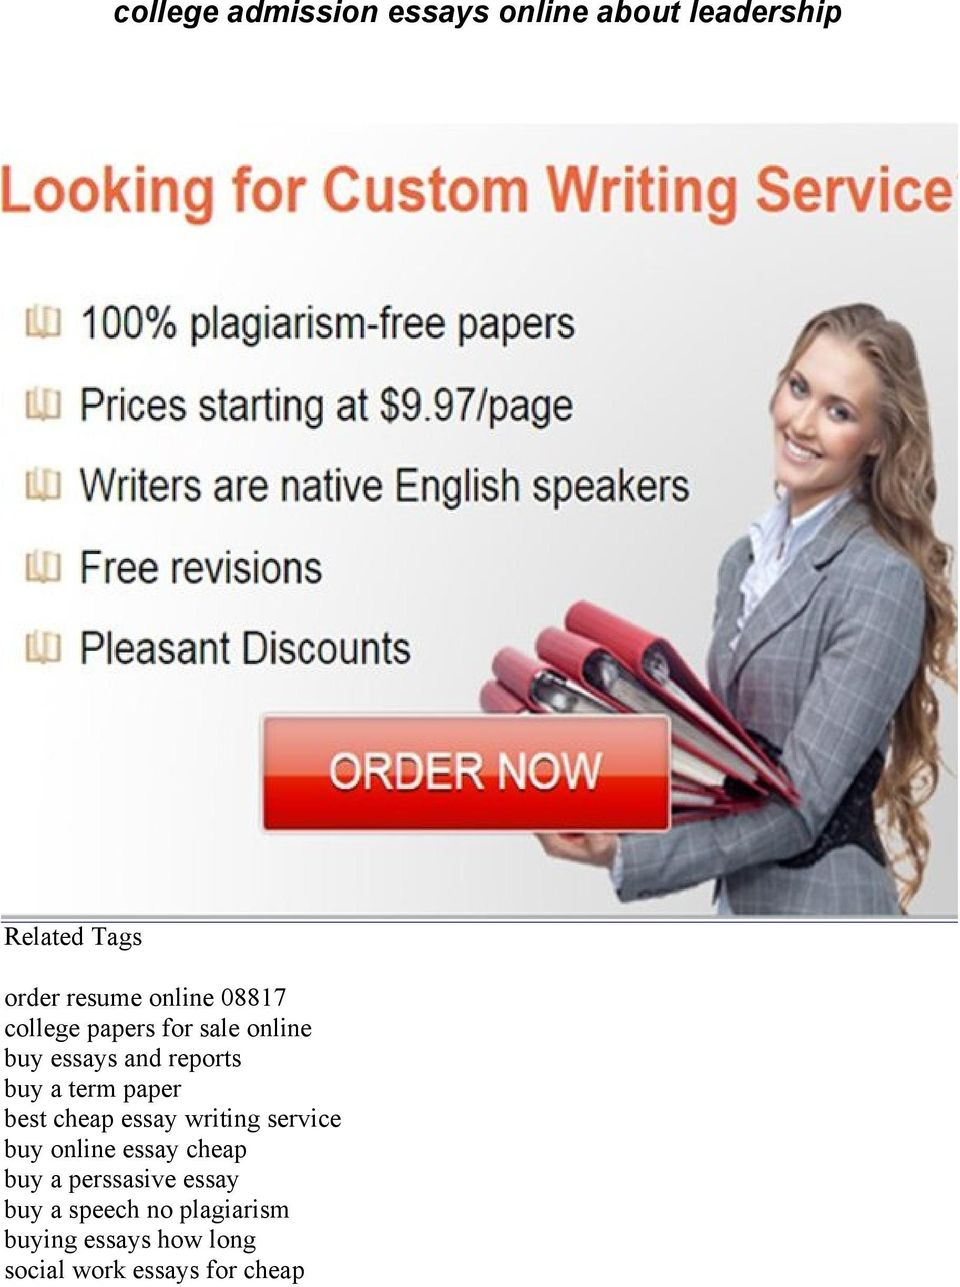 paper best cheap essay writing service buy online essay cheap buy a perssasive